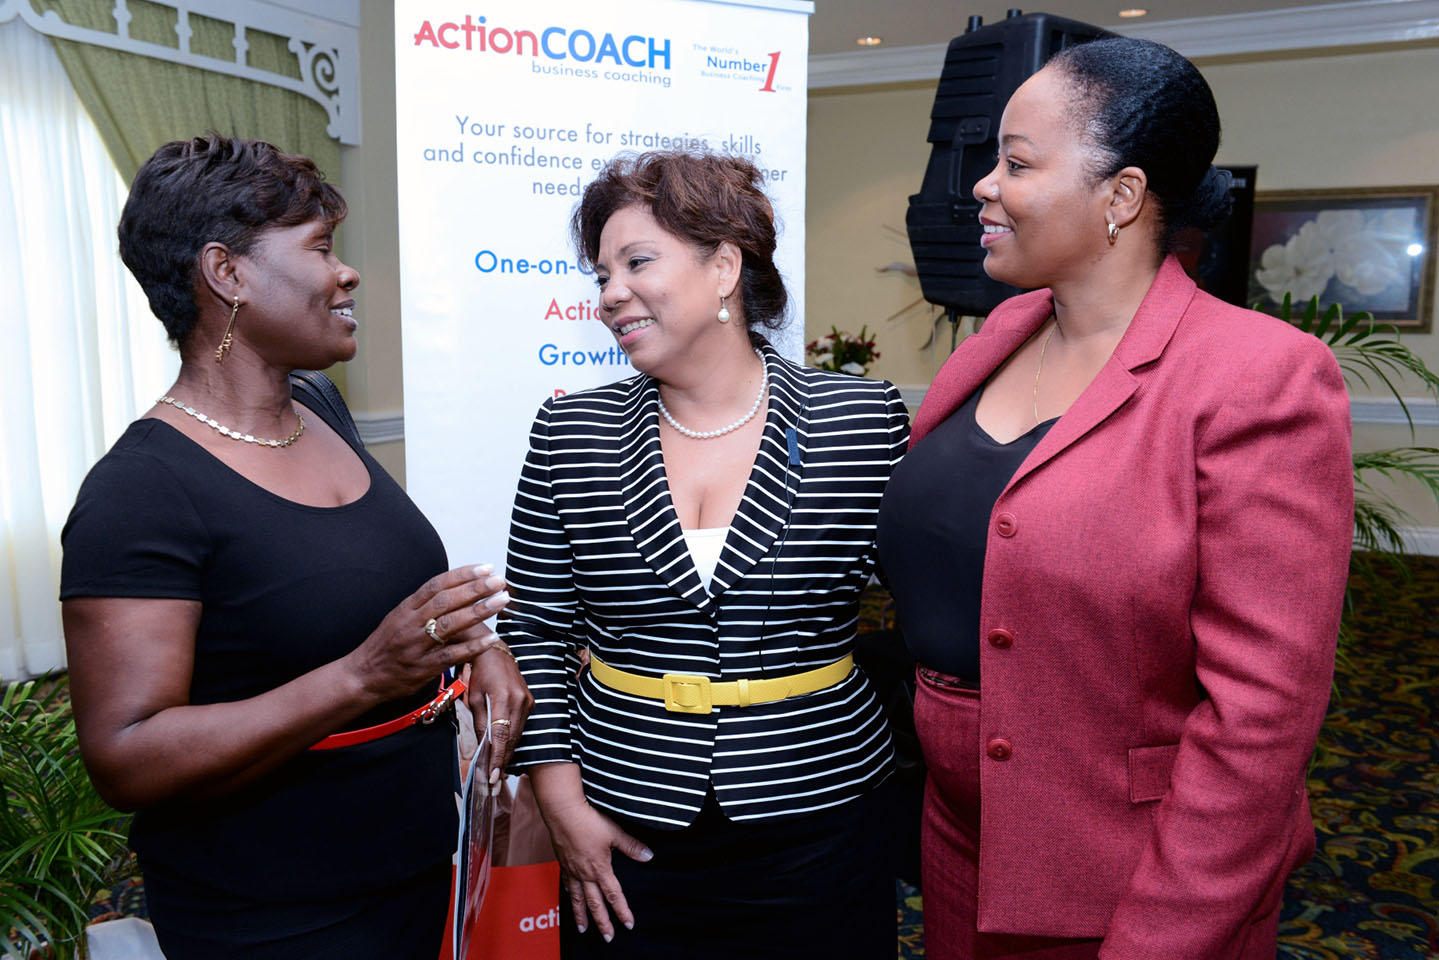 Business Coaching, Consulting, Mentoring, and Education -  ActionCOACH